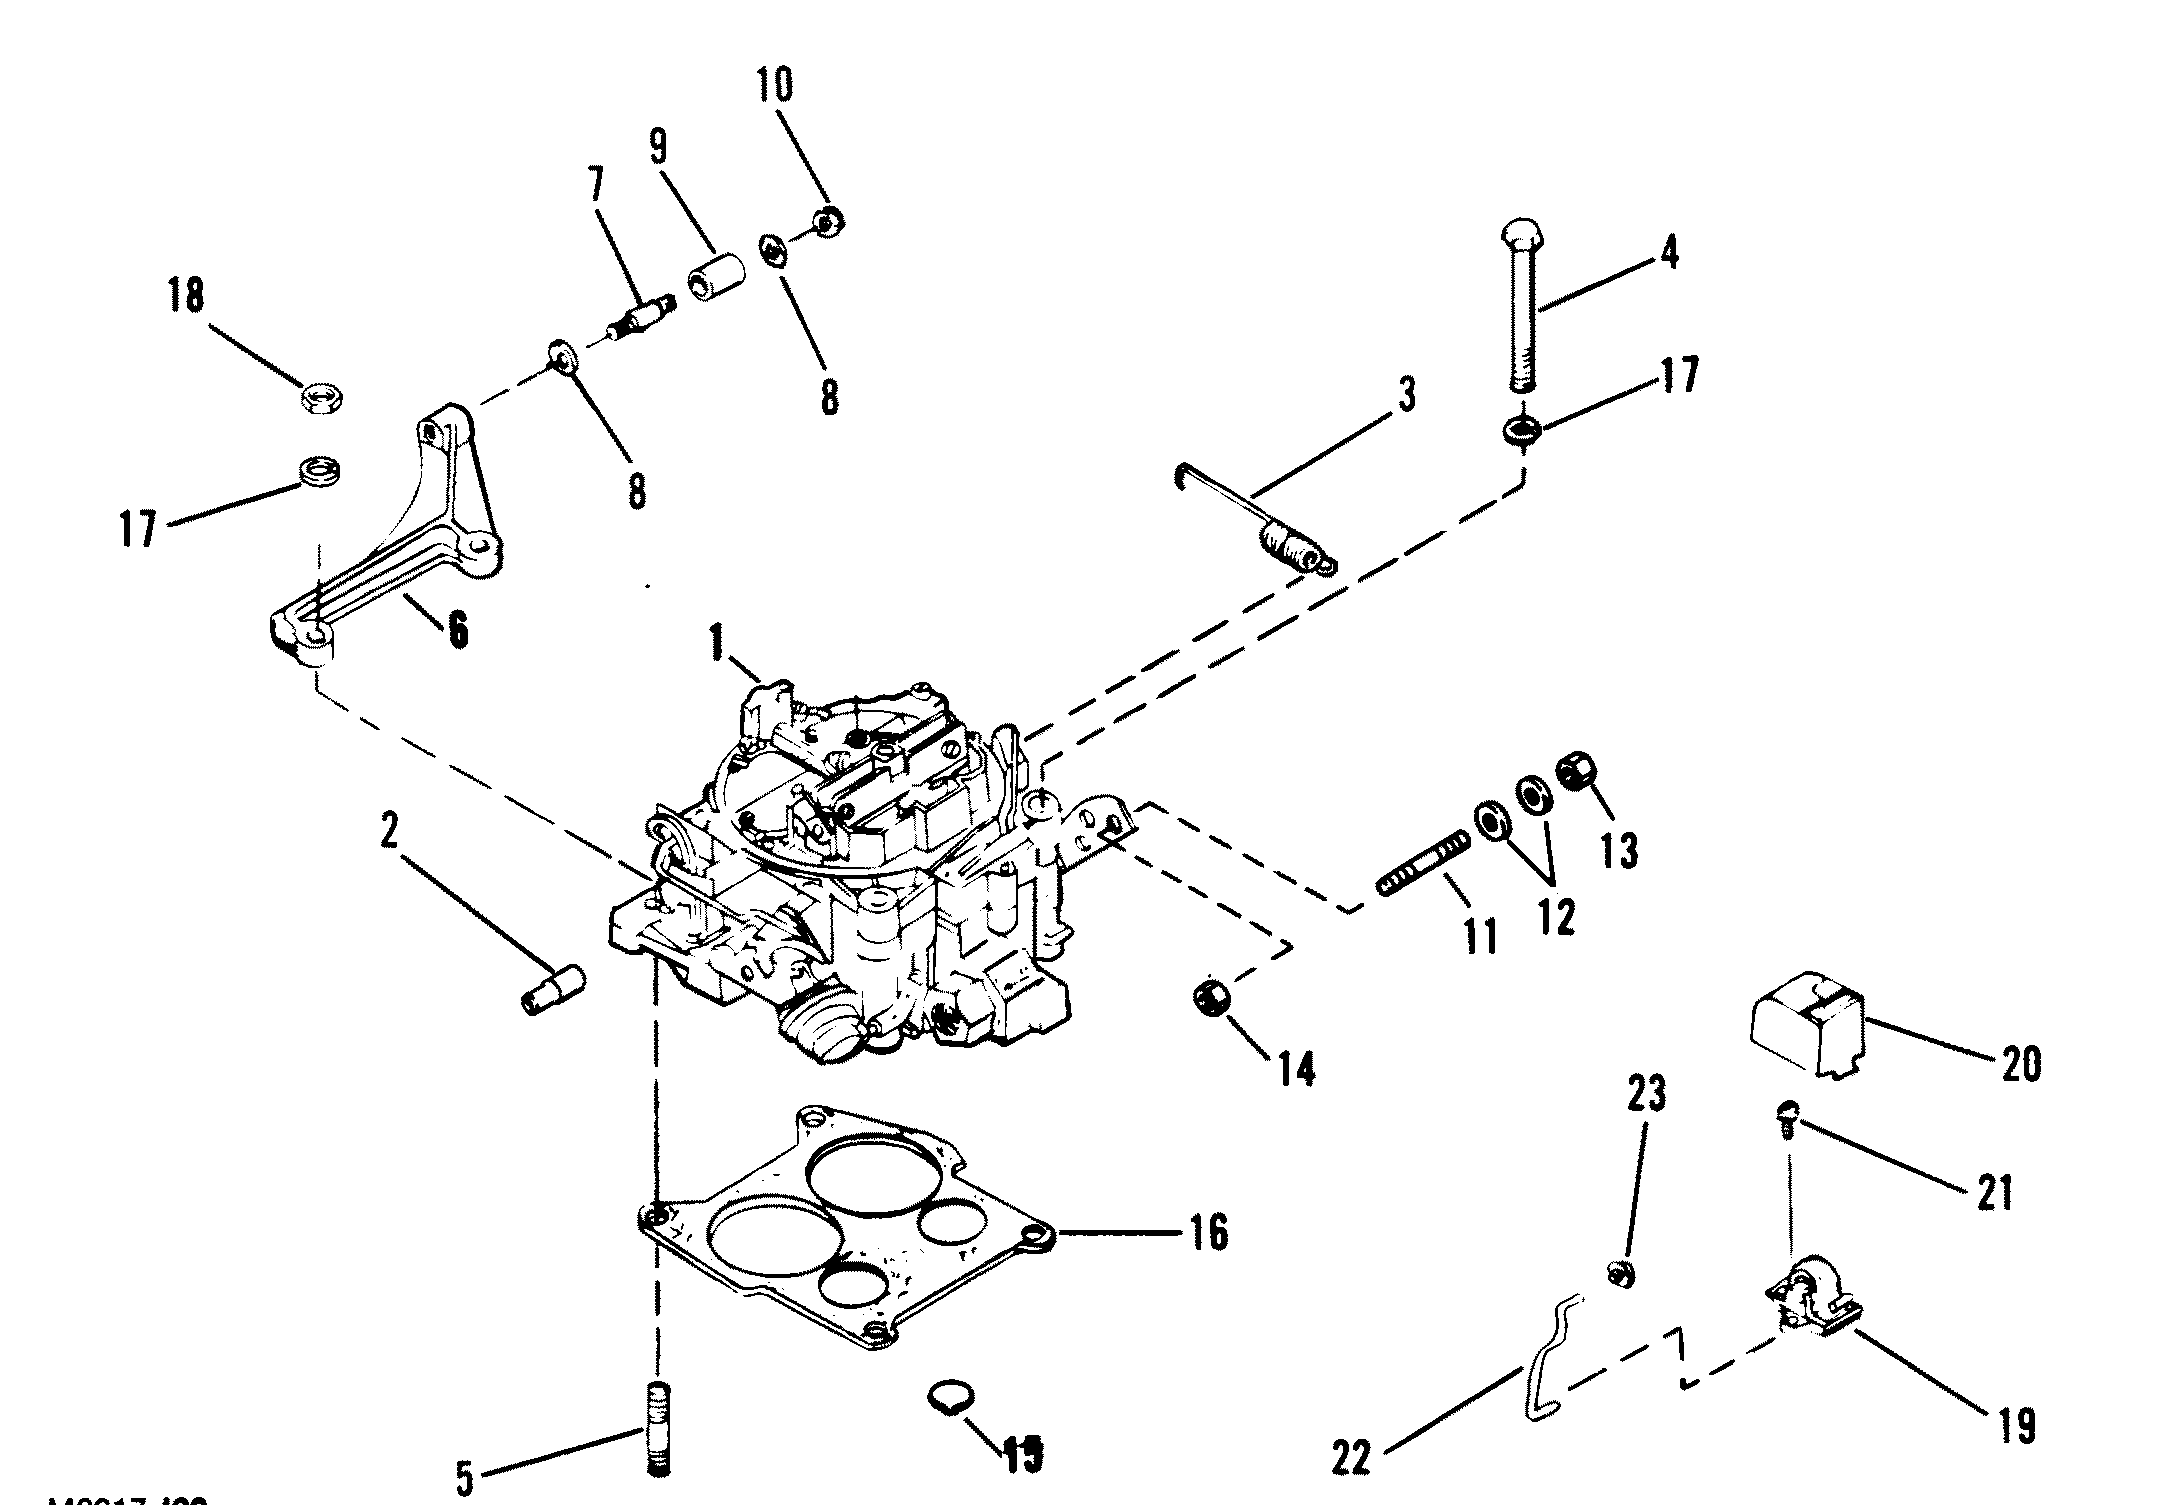 mercruiser wiring harness adapter with 5284 on Marine Engine Wiring Harness furthermore 5284 further Rs232 Db9 To Rj11 Wiring Diagram in addition Tbi 350 Chevy Engine Sensor Locations as well Replacement Kits For Thunderbolt Iv Ignition Control Module.